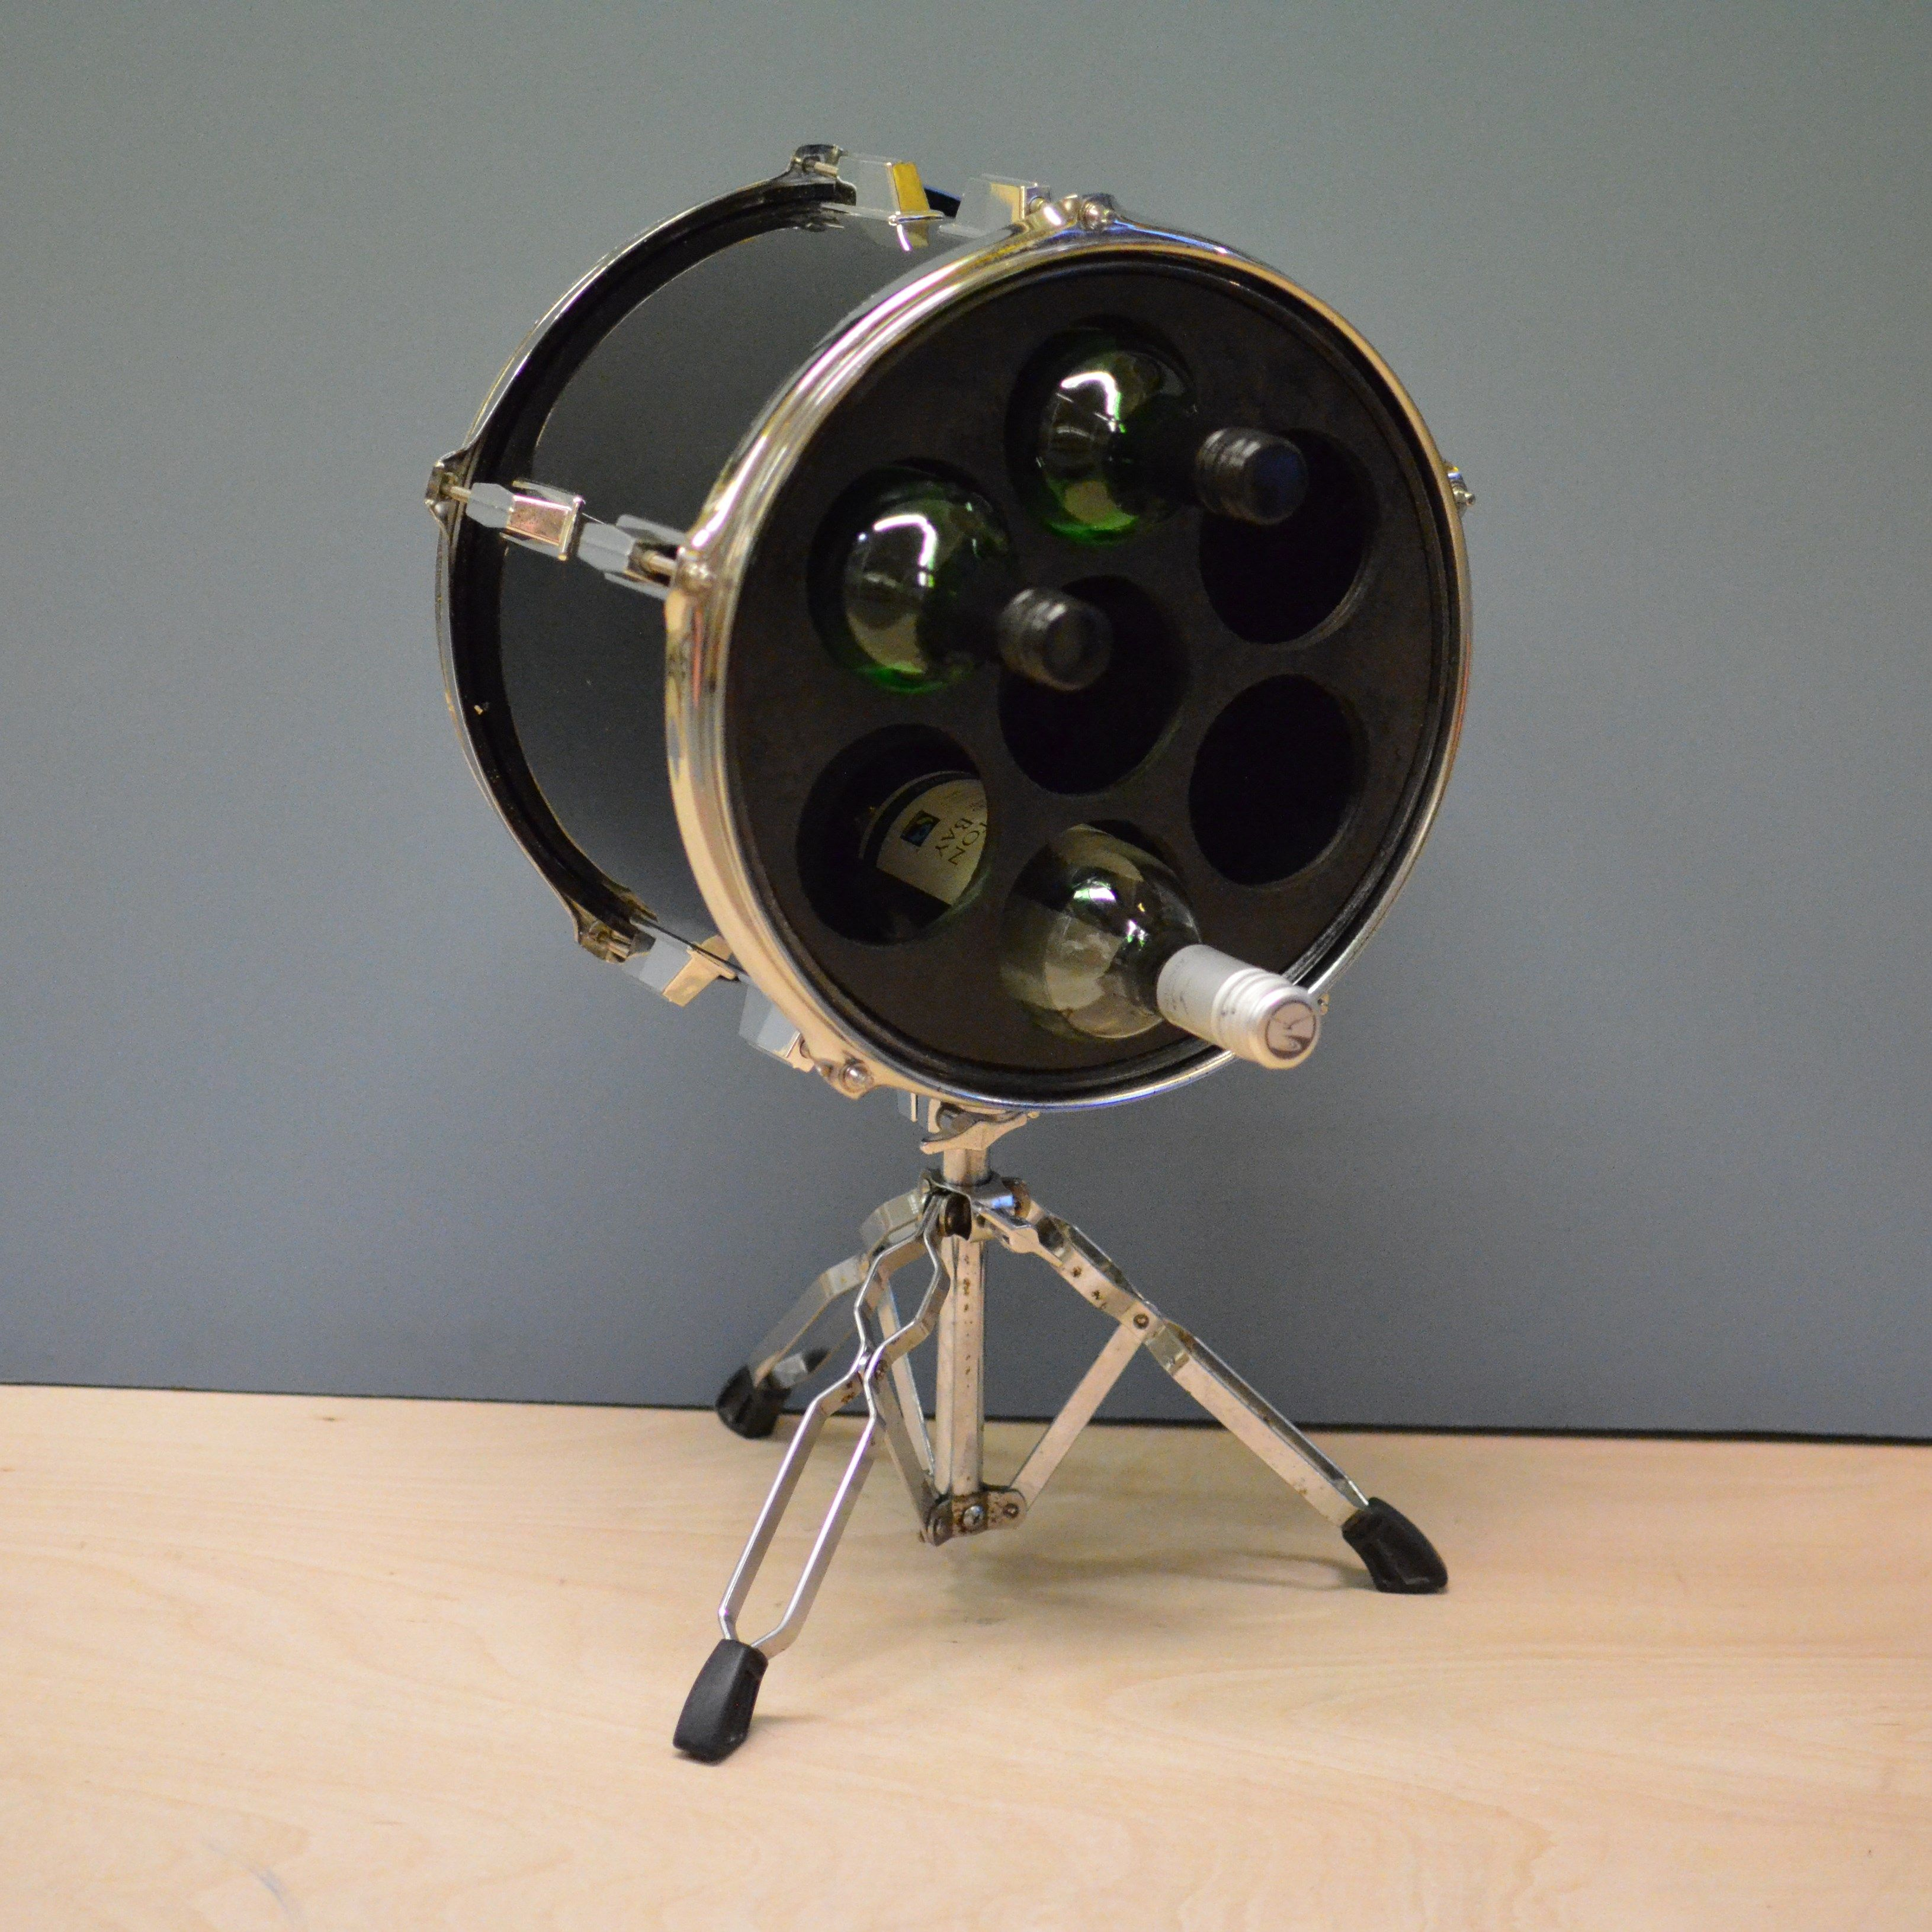 drum furniture. The Newest Addition To Our Collection Of Upcycled Drum Furniture Is This Wine Rack Made From